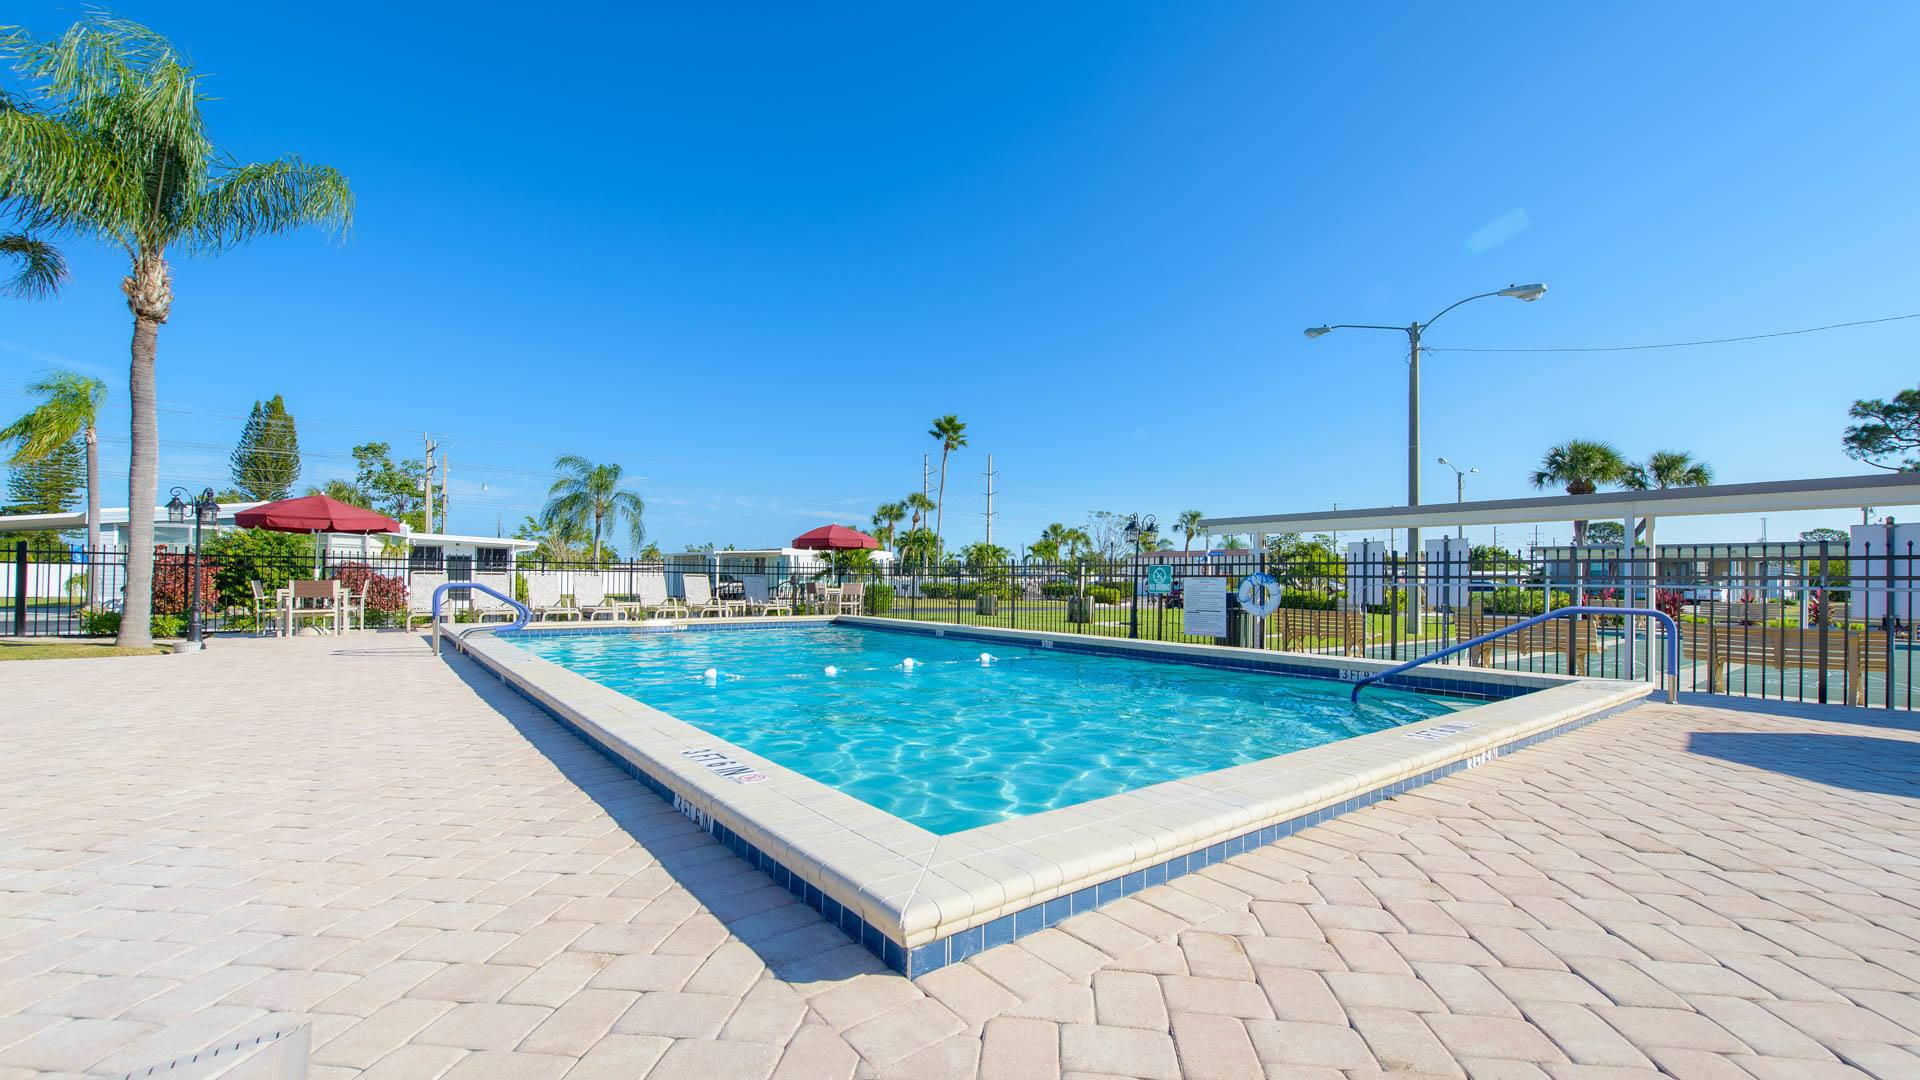 Serendipity 55+ Manufactured Homes Community Swimming Pool in Fort Myers, FL